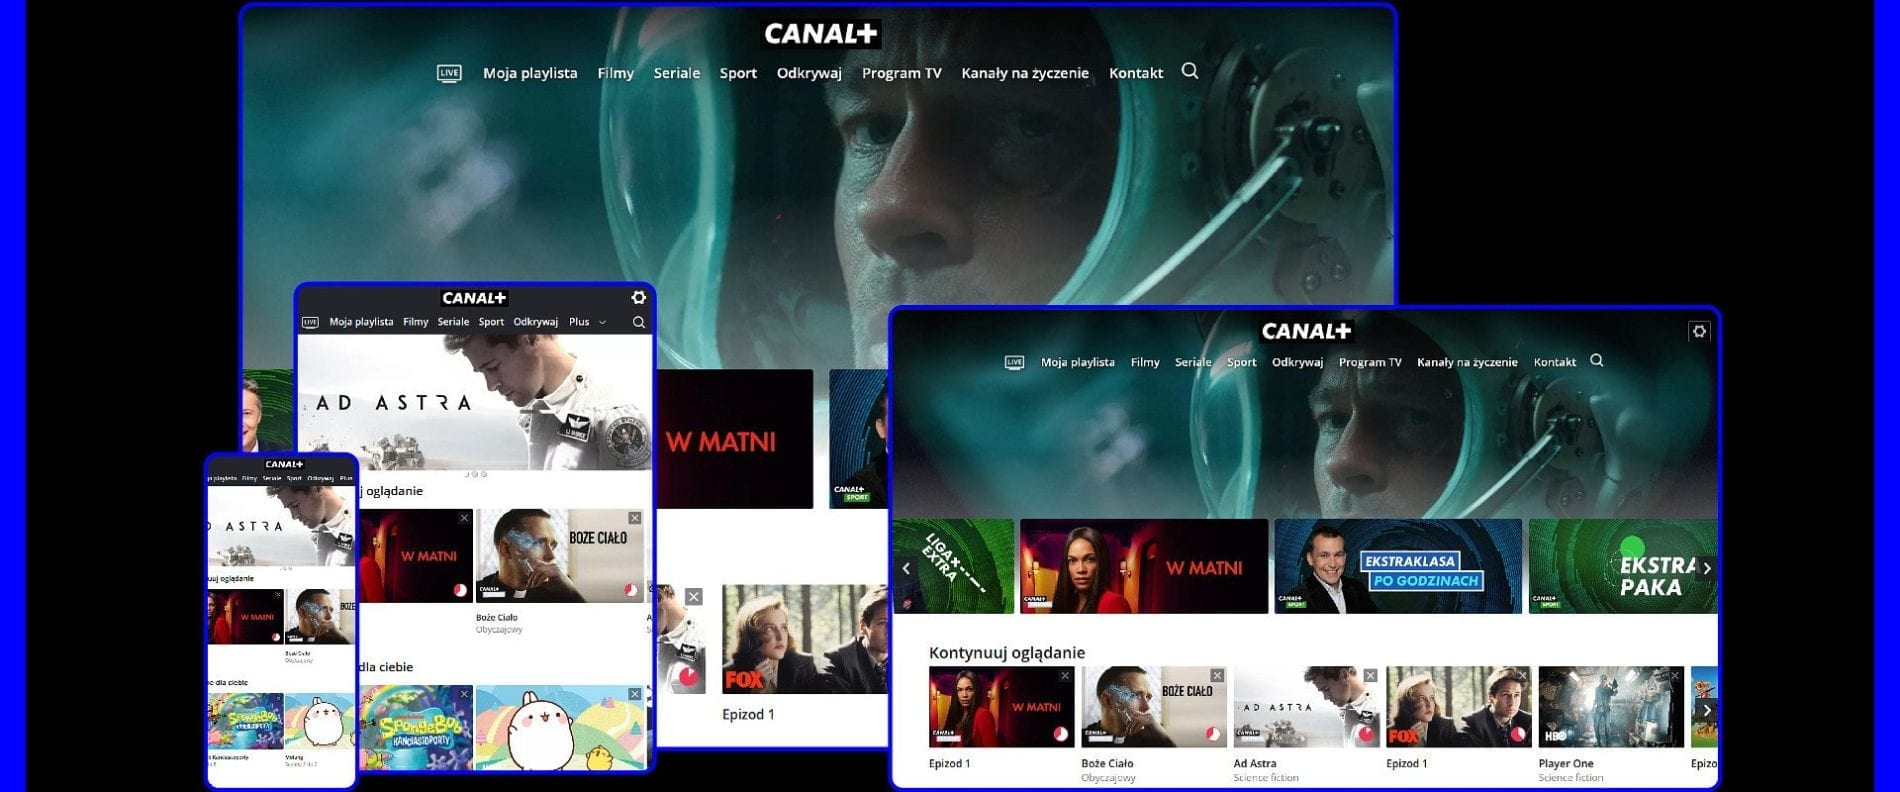 Canal+-VOD